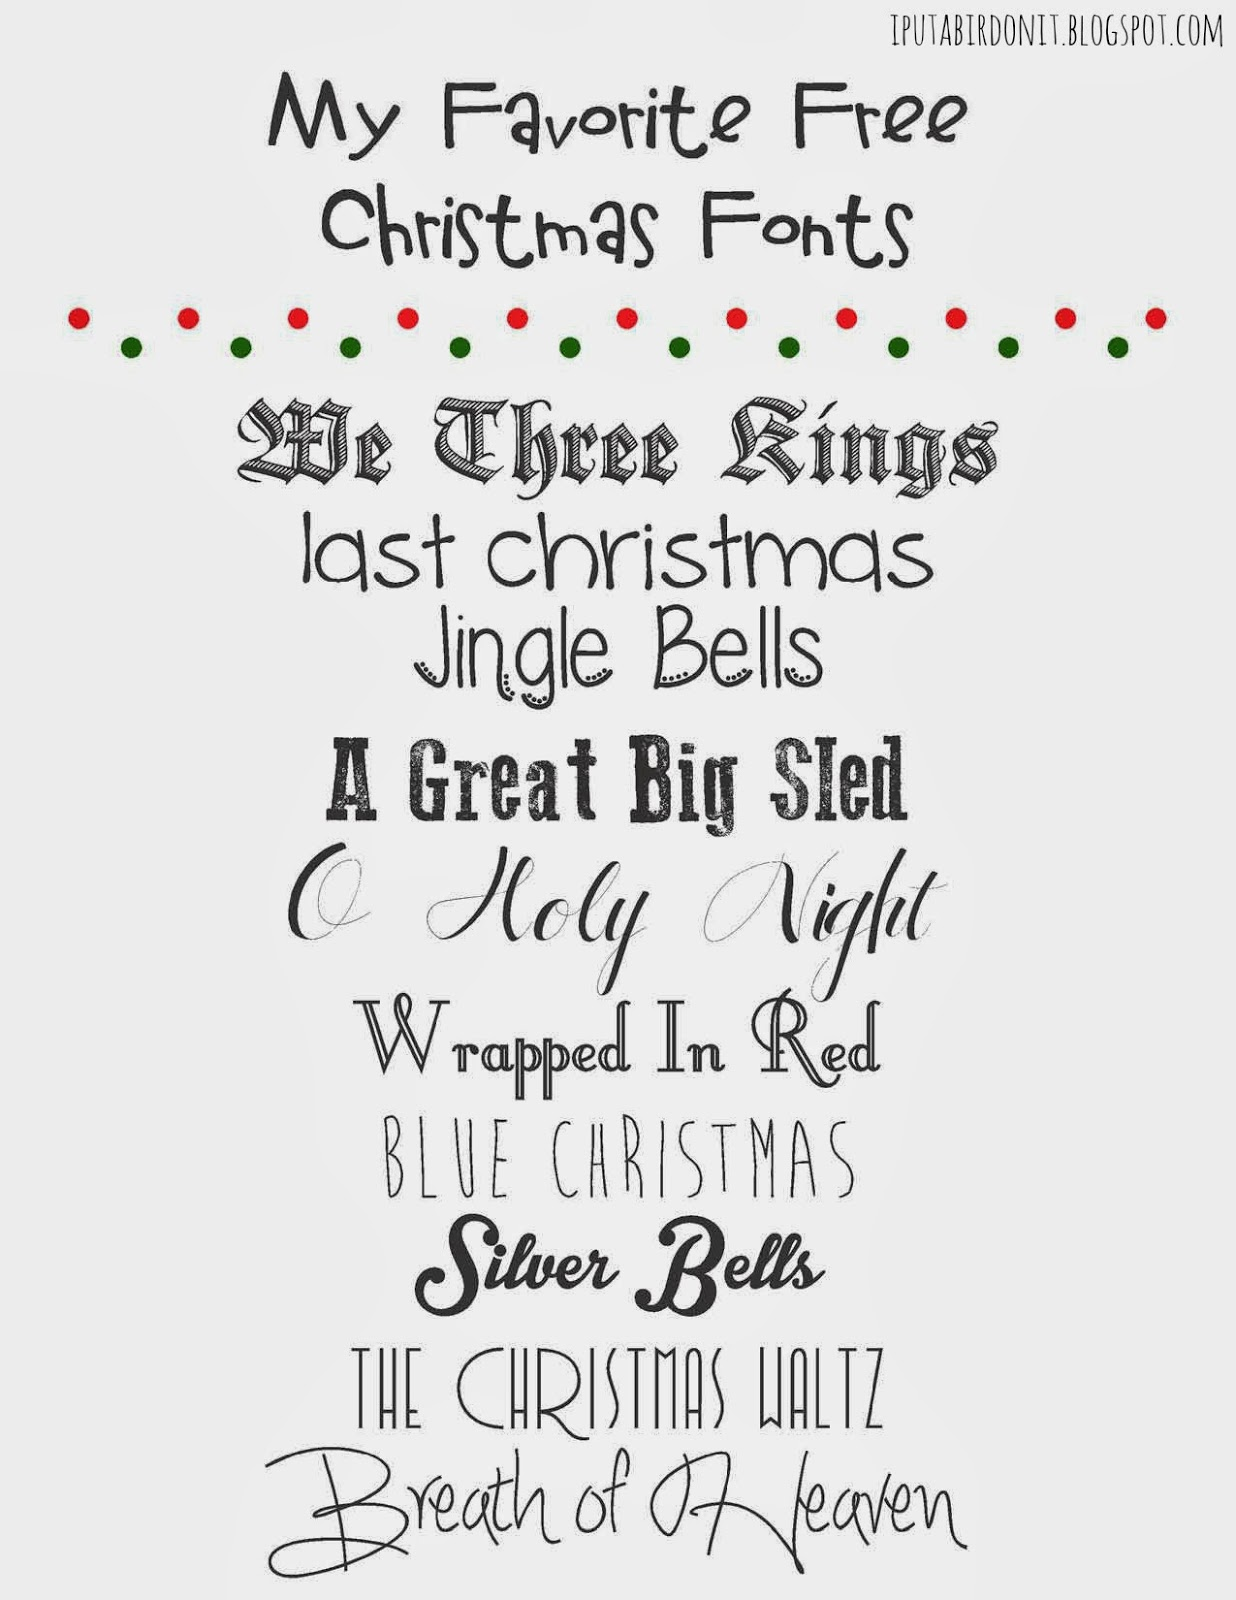 Free Christmas Fonts.Put A Bird On It My Favorite Free Christmas Fonts And A